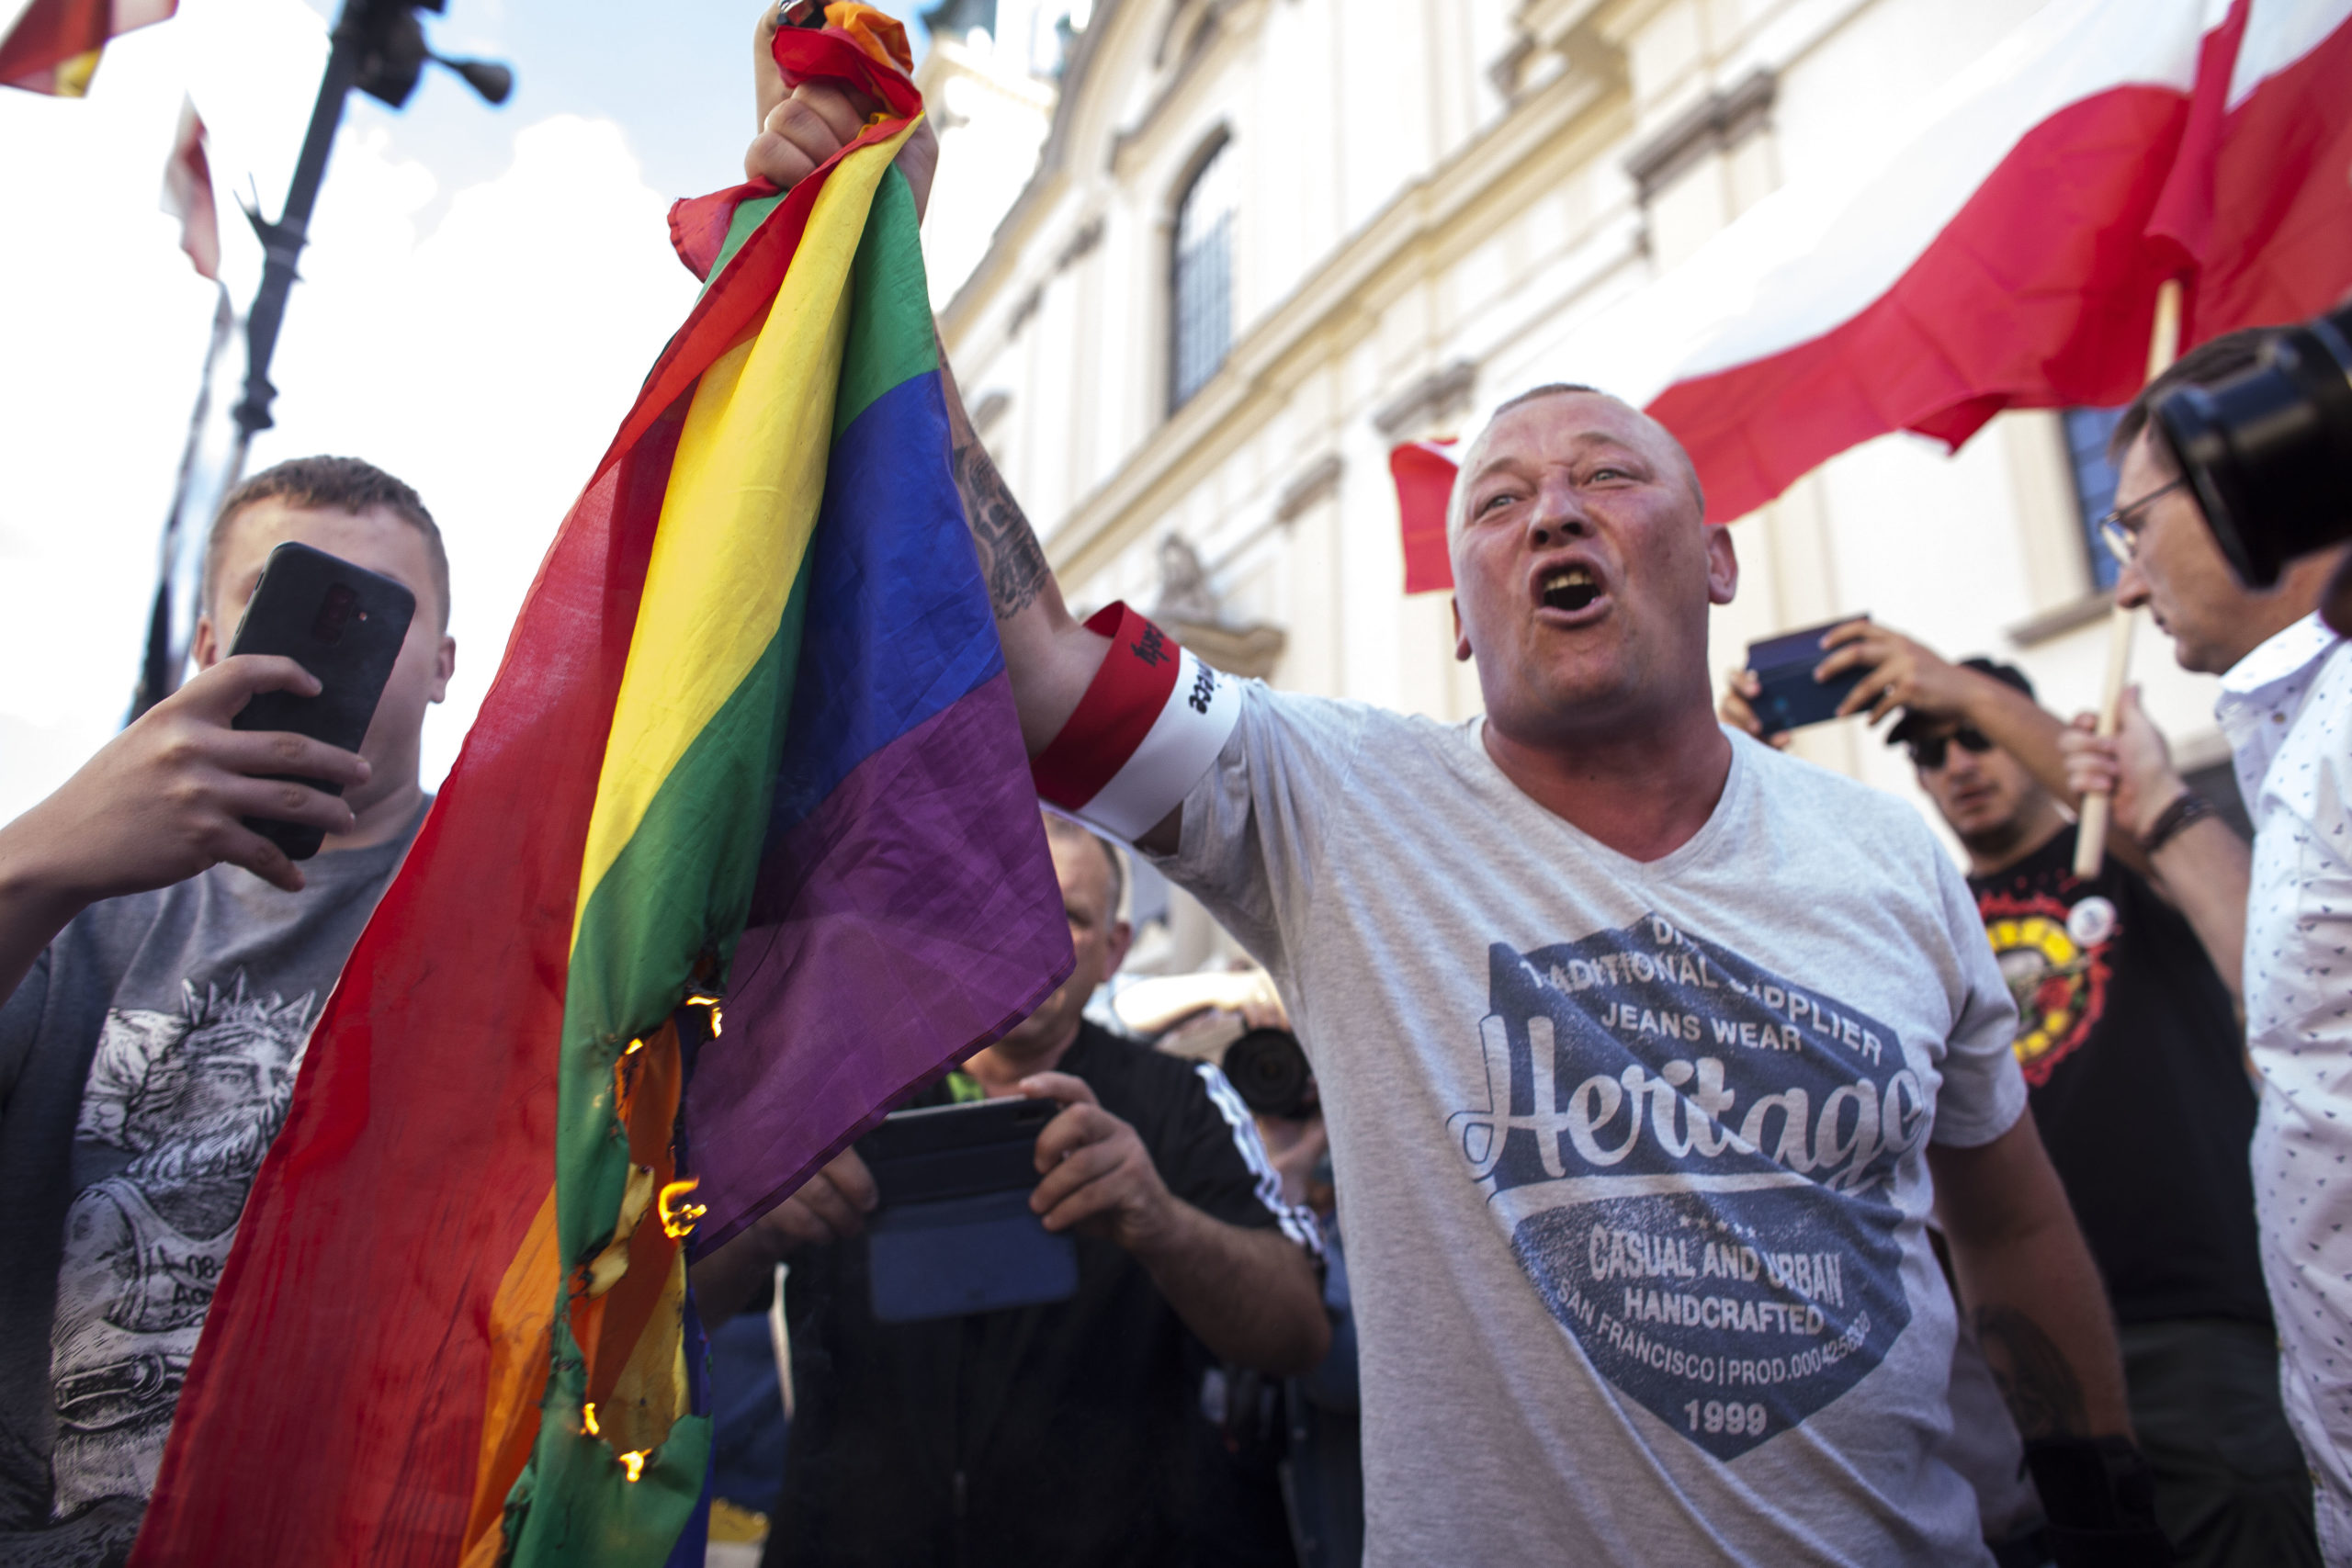 A man burns a LGBT flag during the anniversary of Warsaw Uprising in Warsaw, Poland